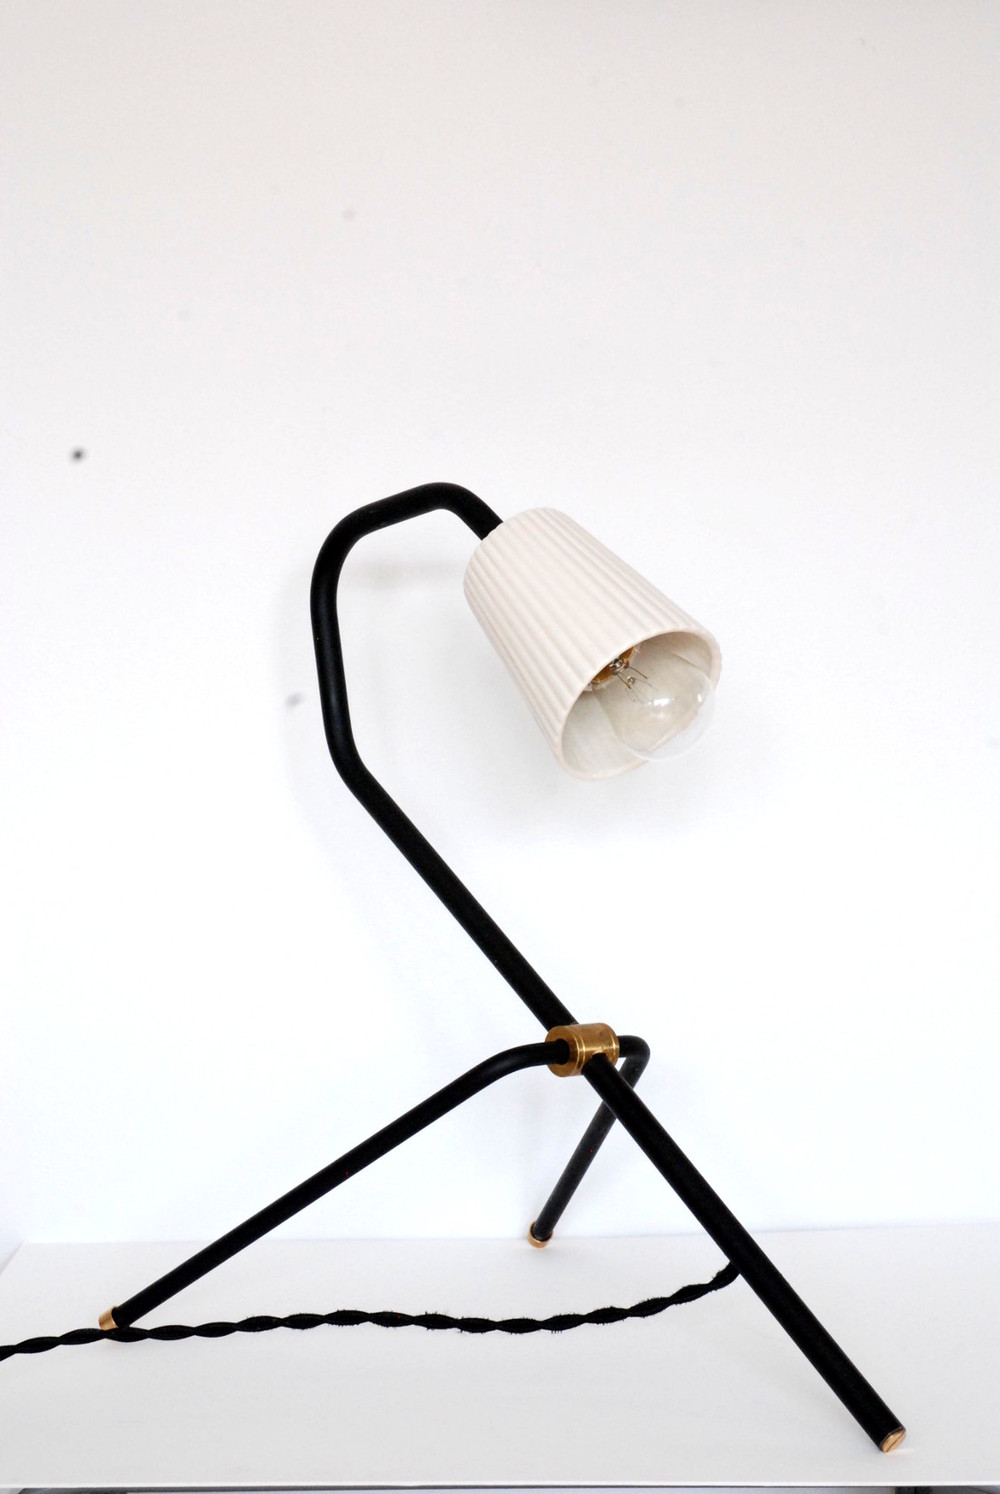 FD_Table Lamp Tripod_Art&Manufacture collab.JPG